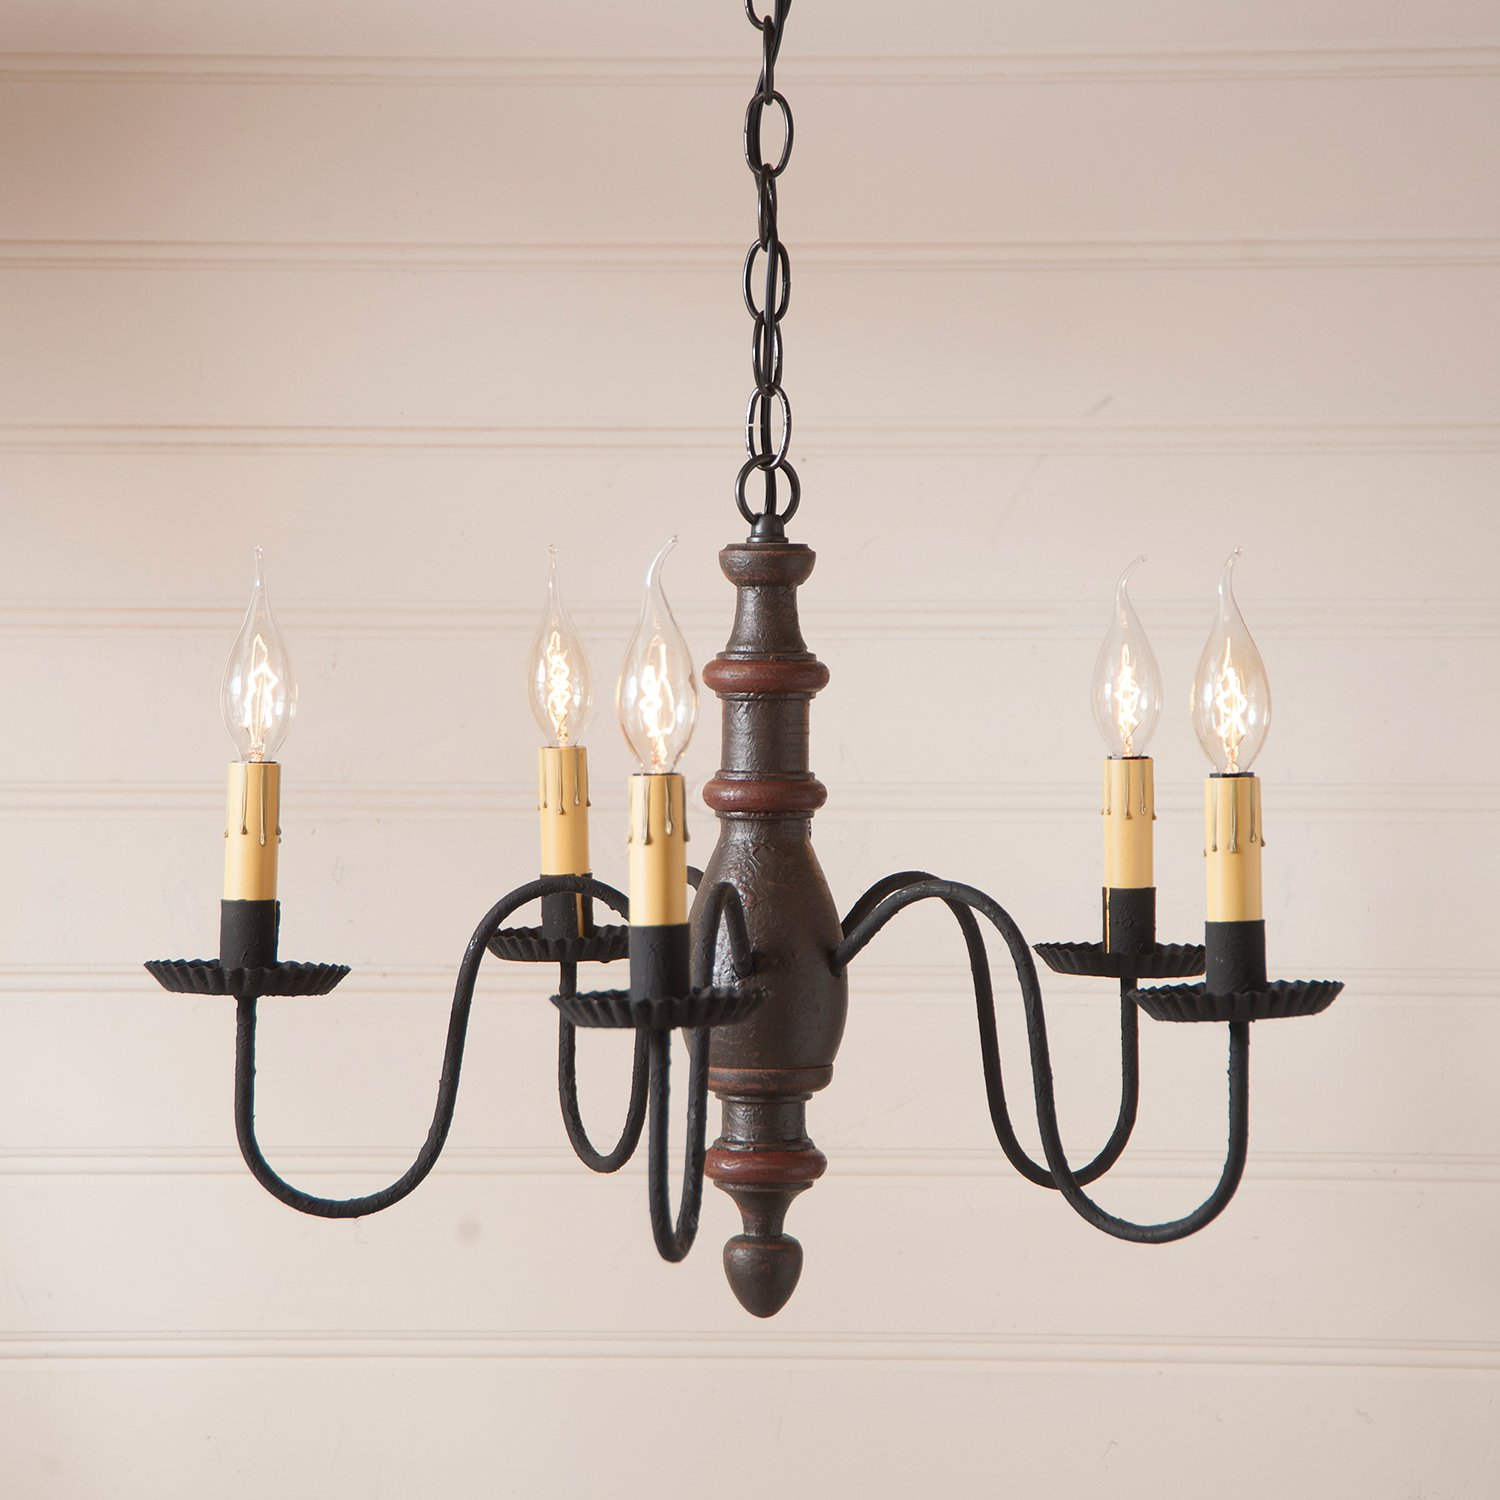 Country Inn Chandelier in Espresso with Salem Brick